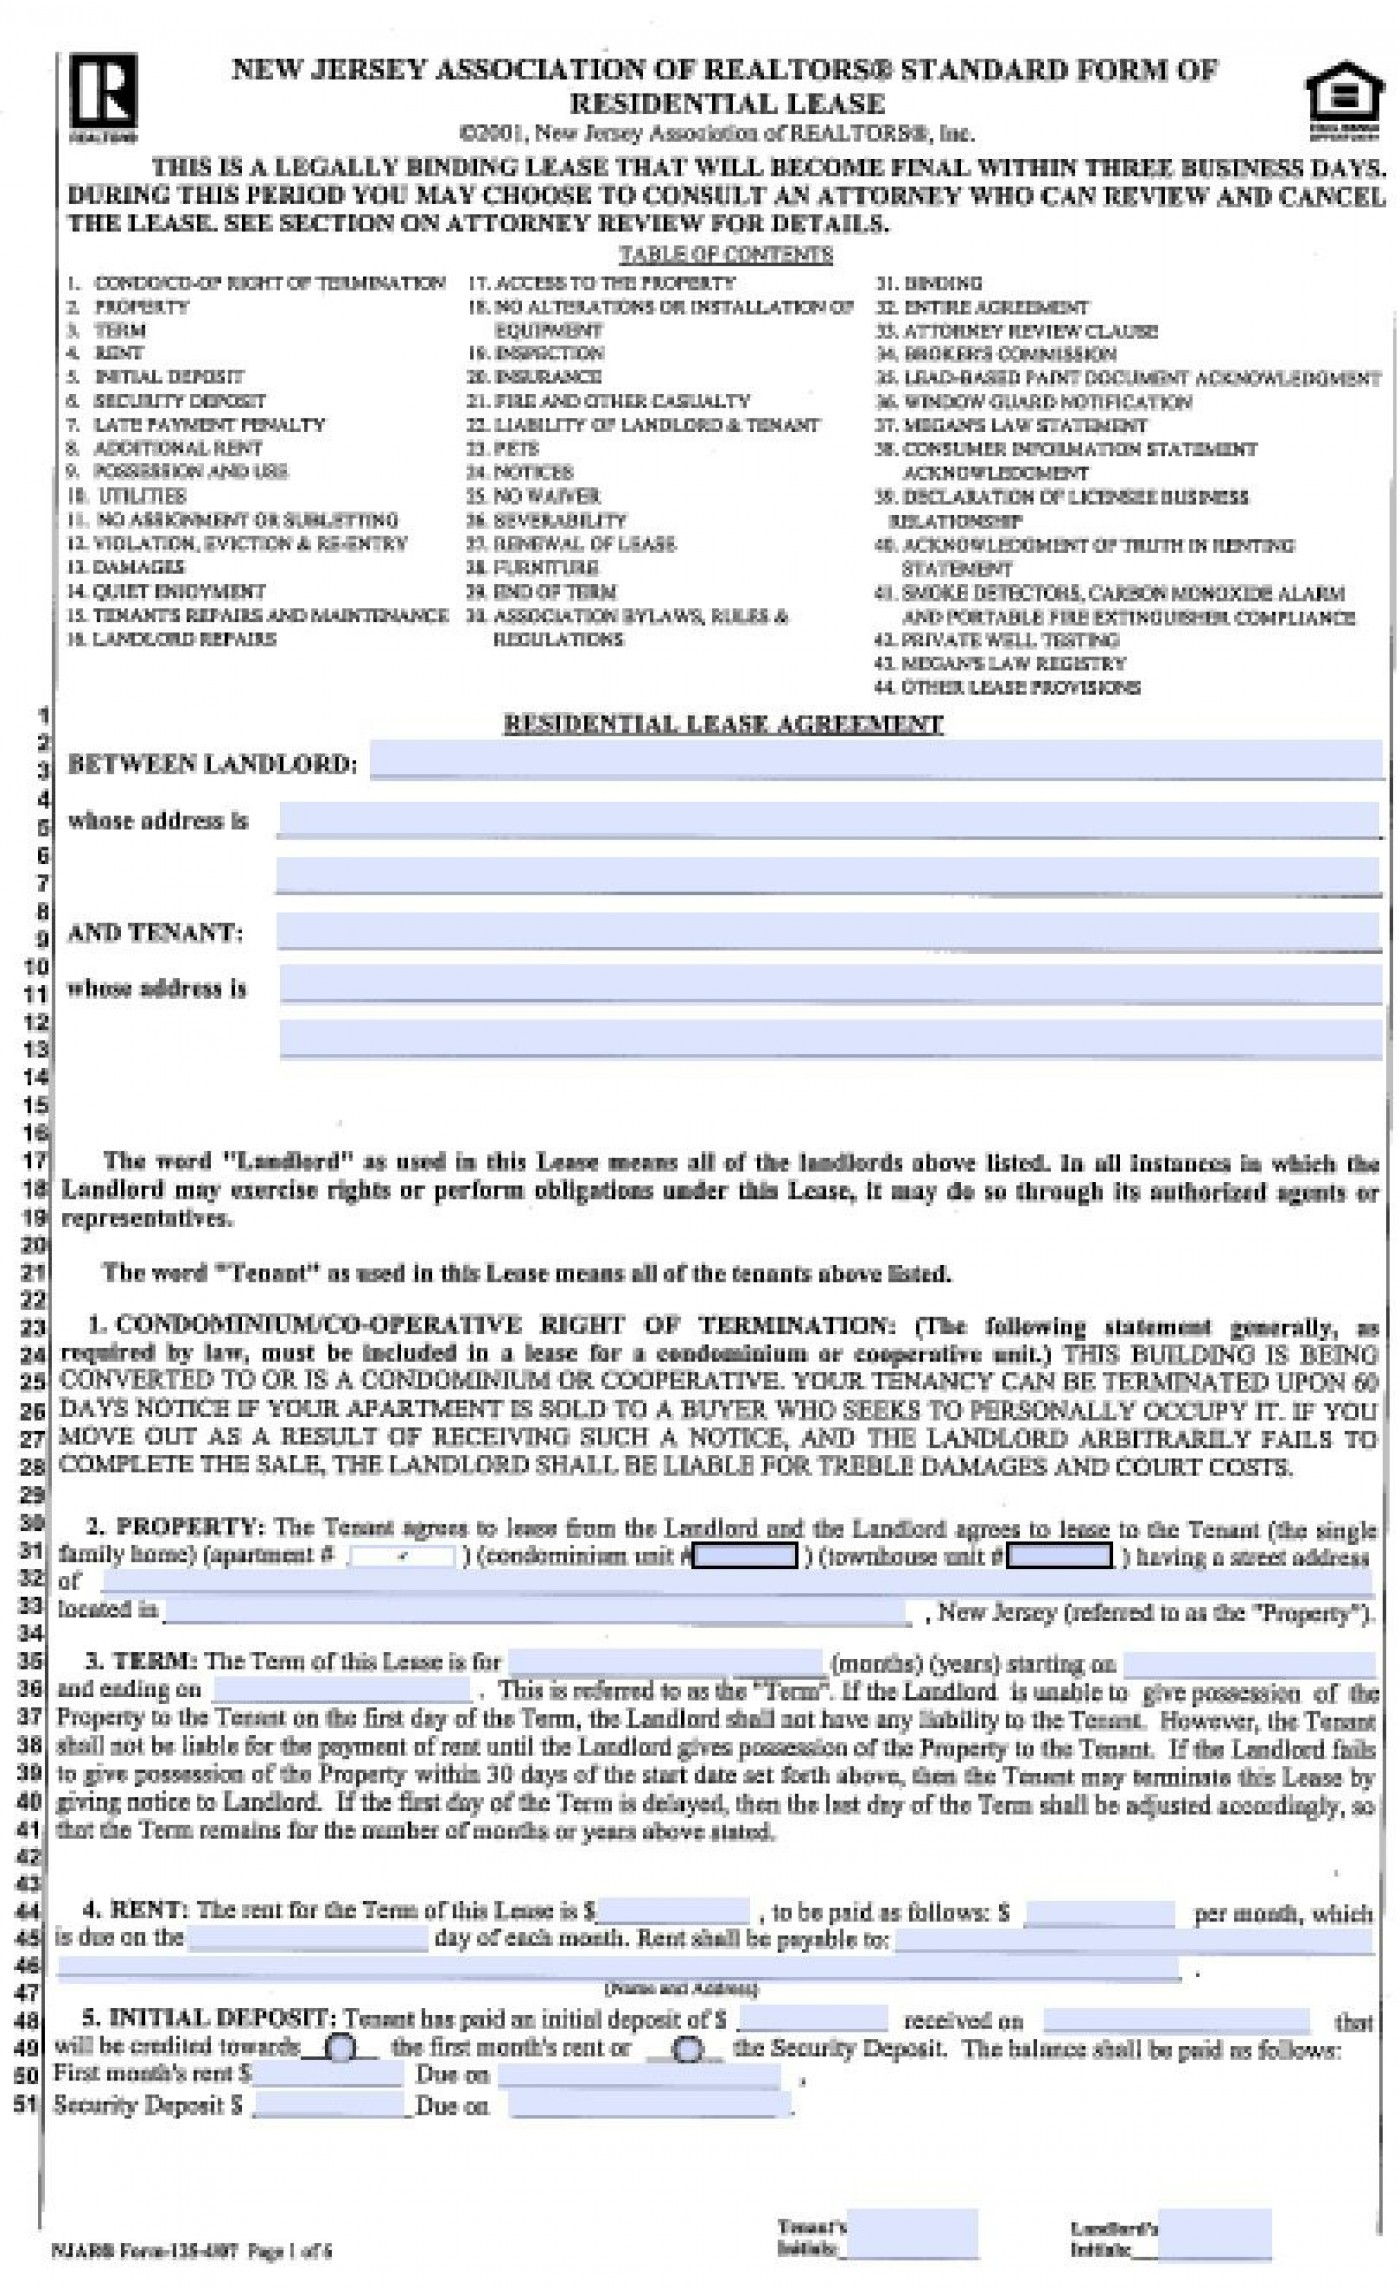 004 Archaicawful Generic Rental Lease Agreement Nj Design  Sample1400